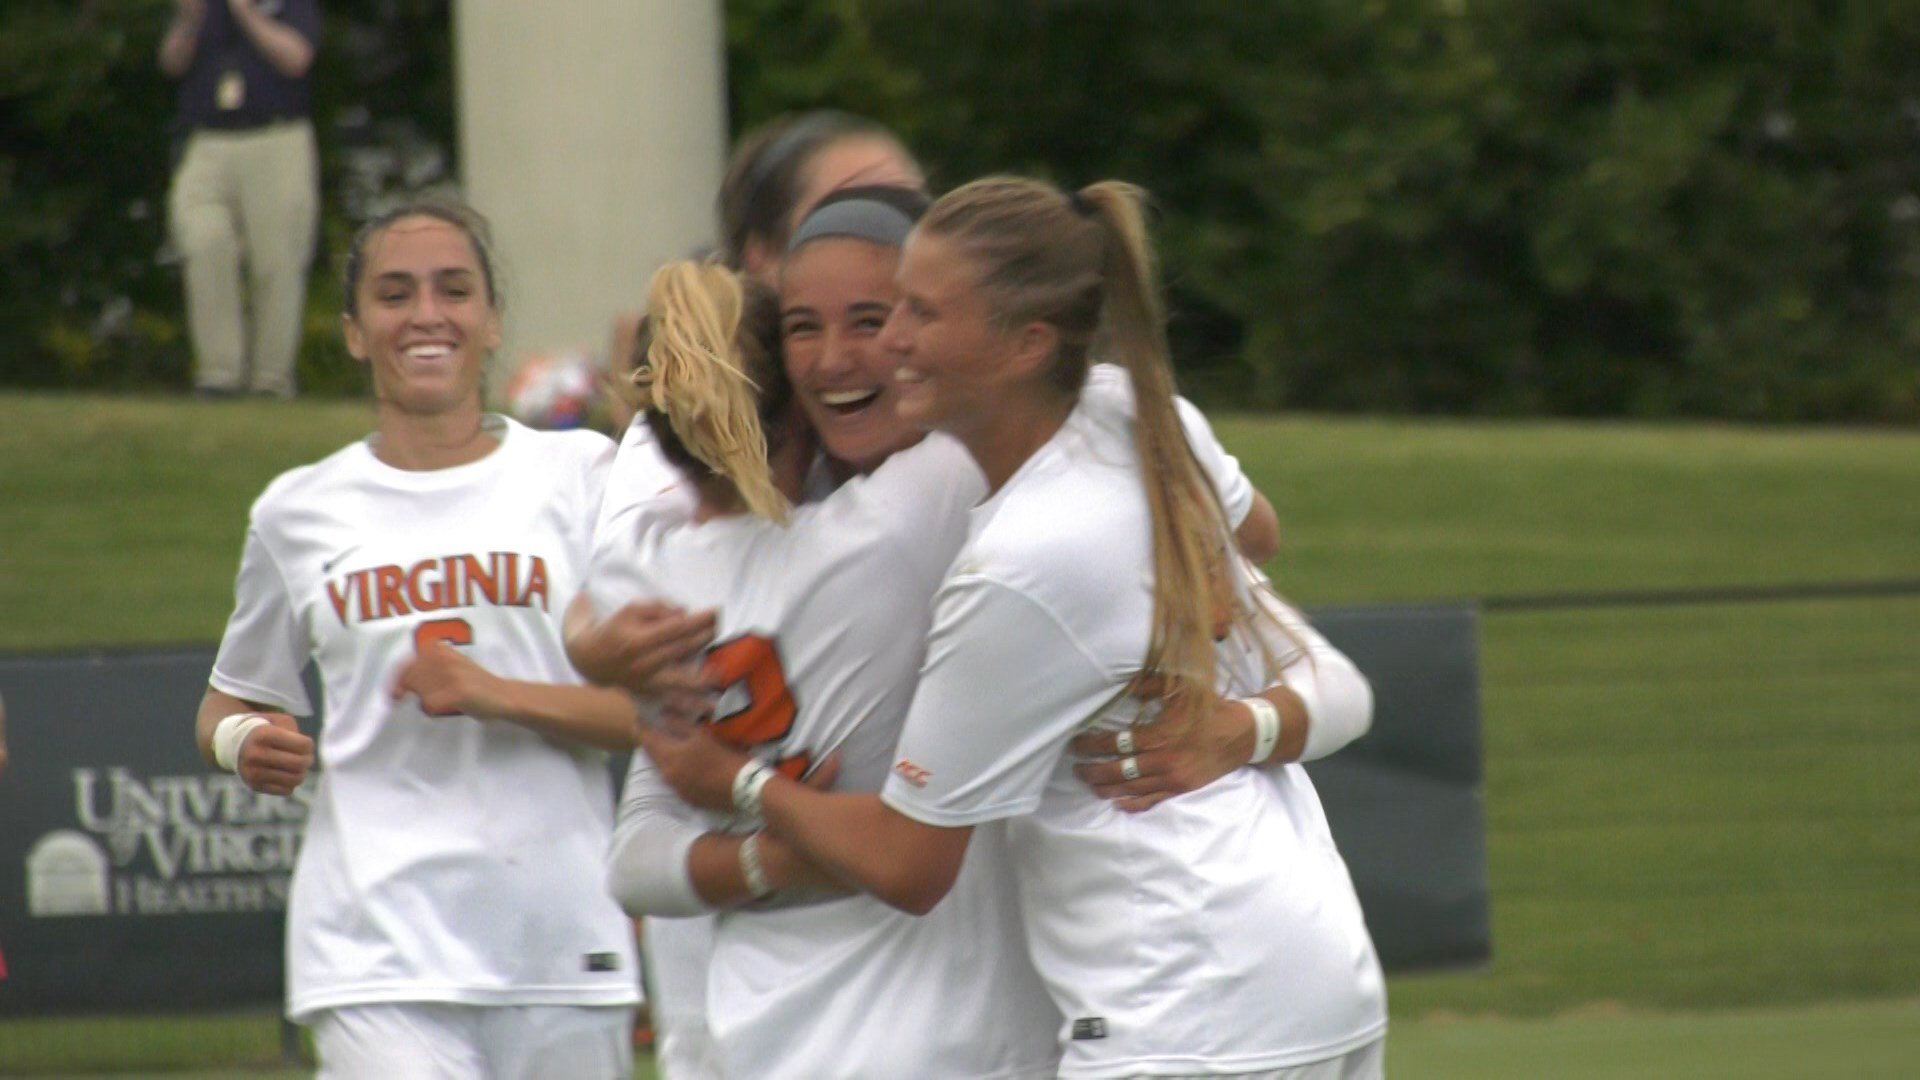 UVA Women's Soccer Earns No. 1 Seed for NCAA Tournament